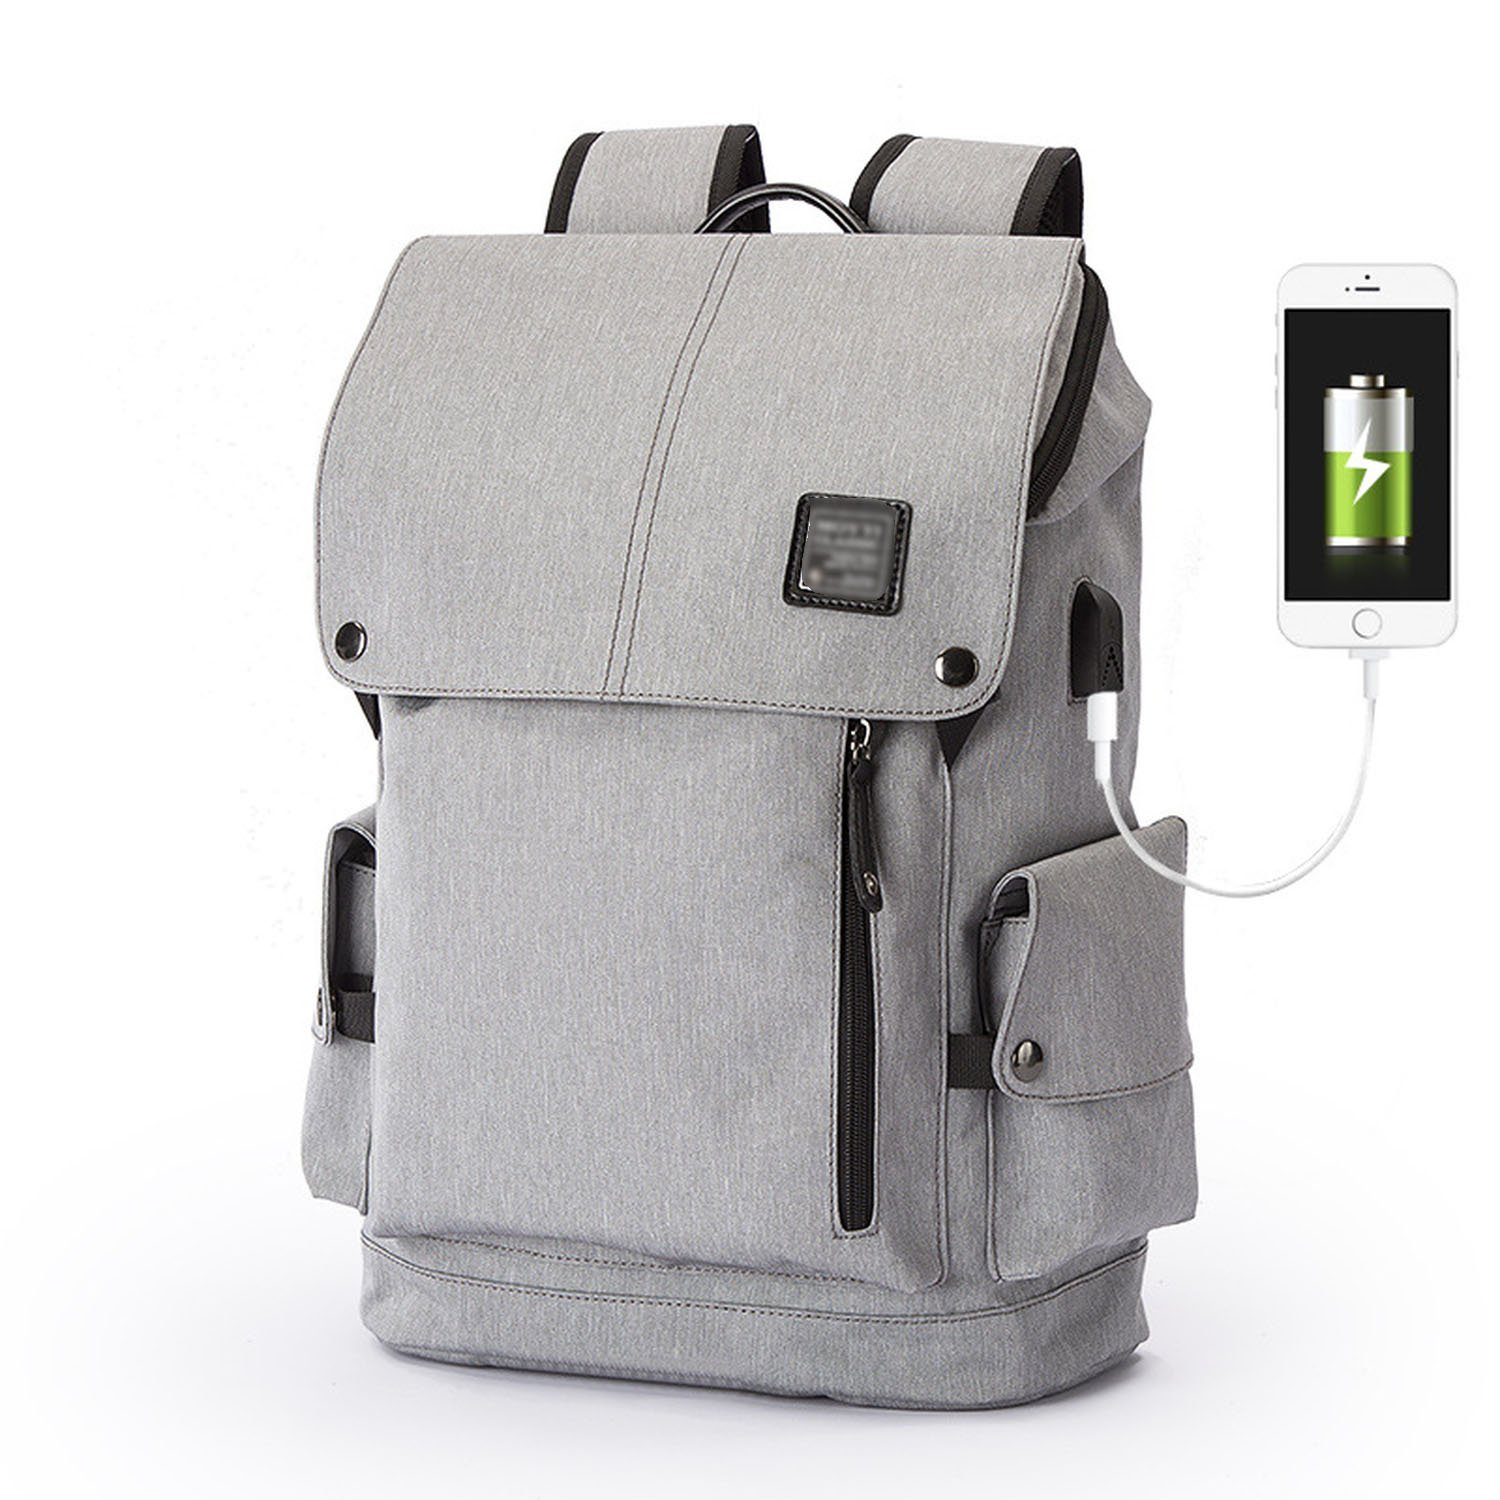 Slim Business Laptop Backpack USB Anti Thief/Tear Water Resistant Travel Computer Backpack 15.6/17Inch,Gray charging